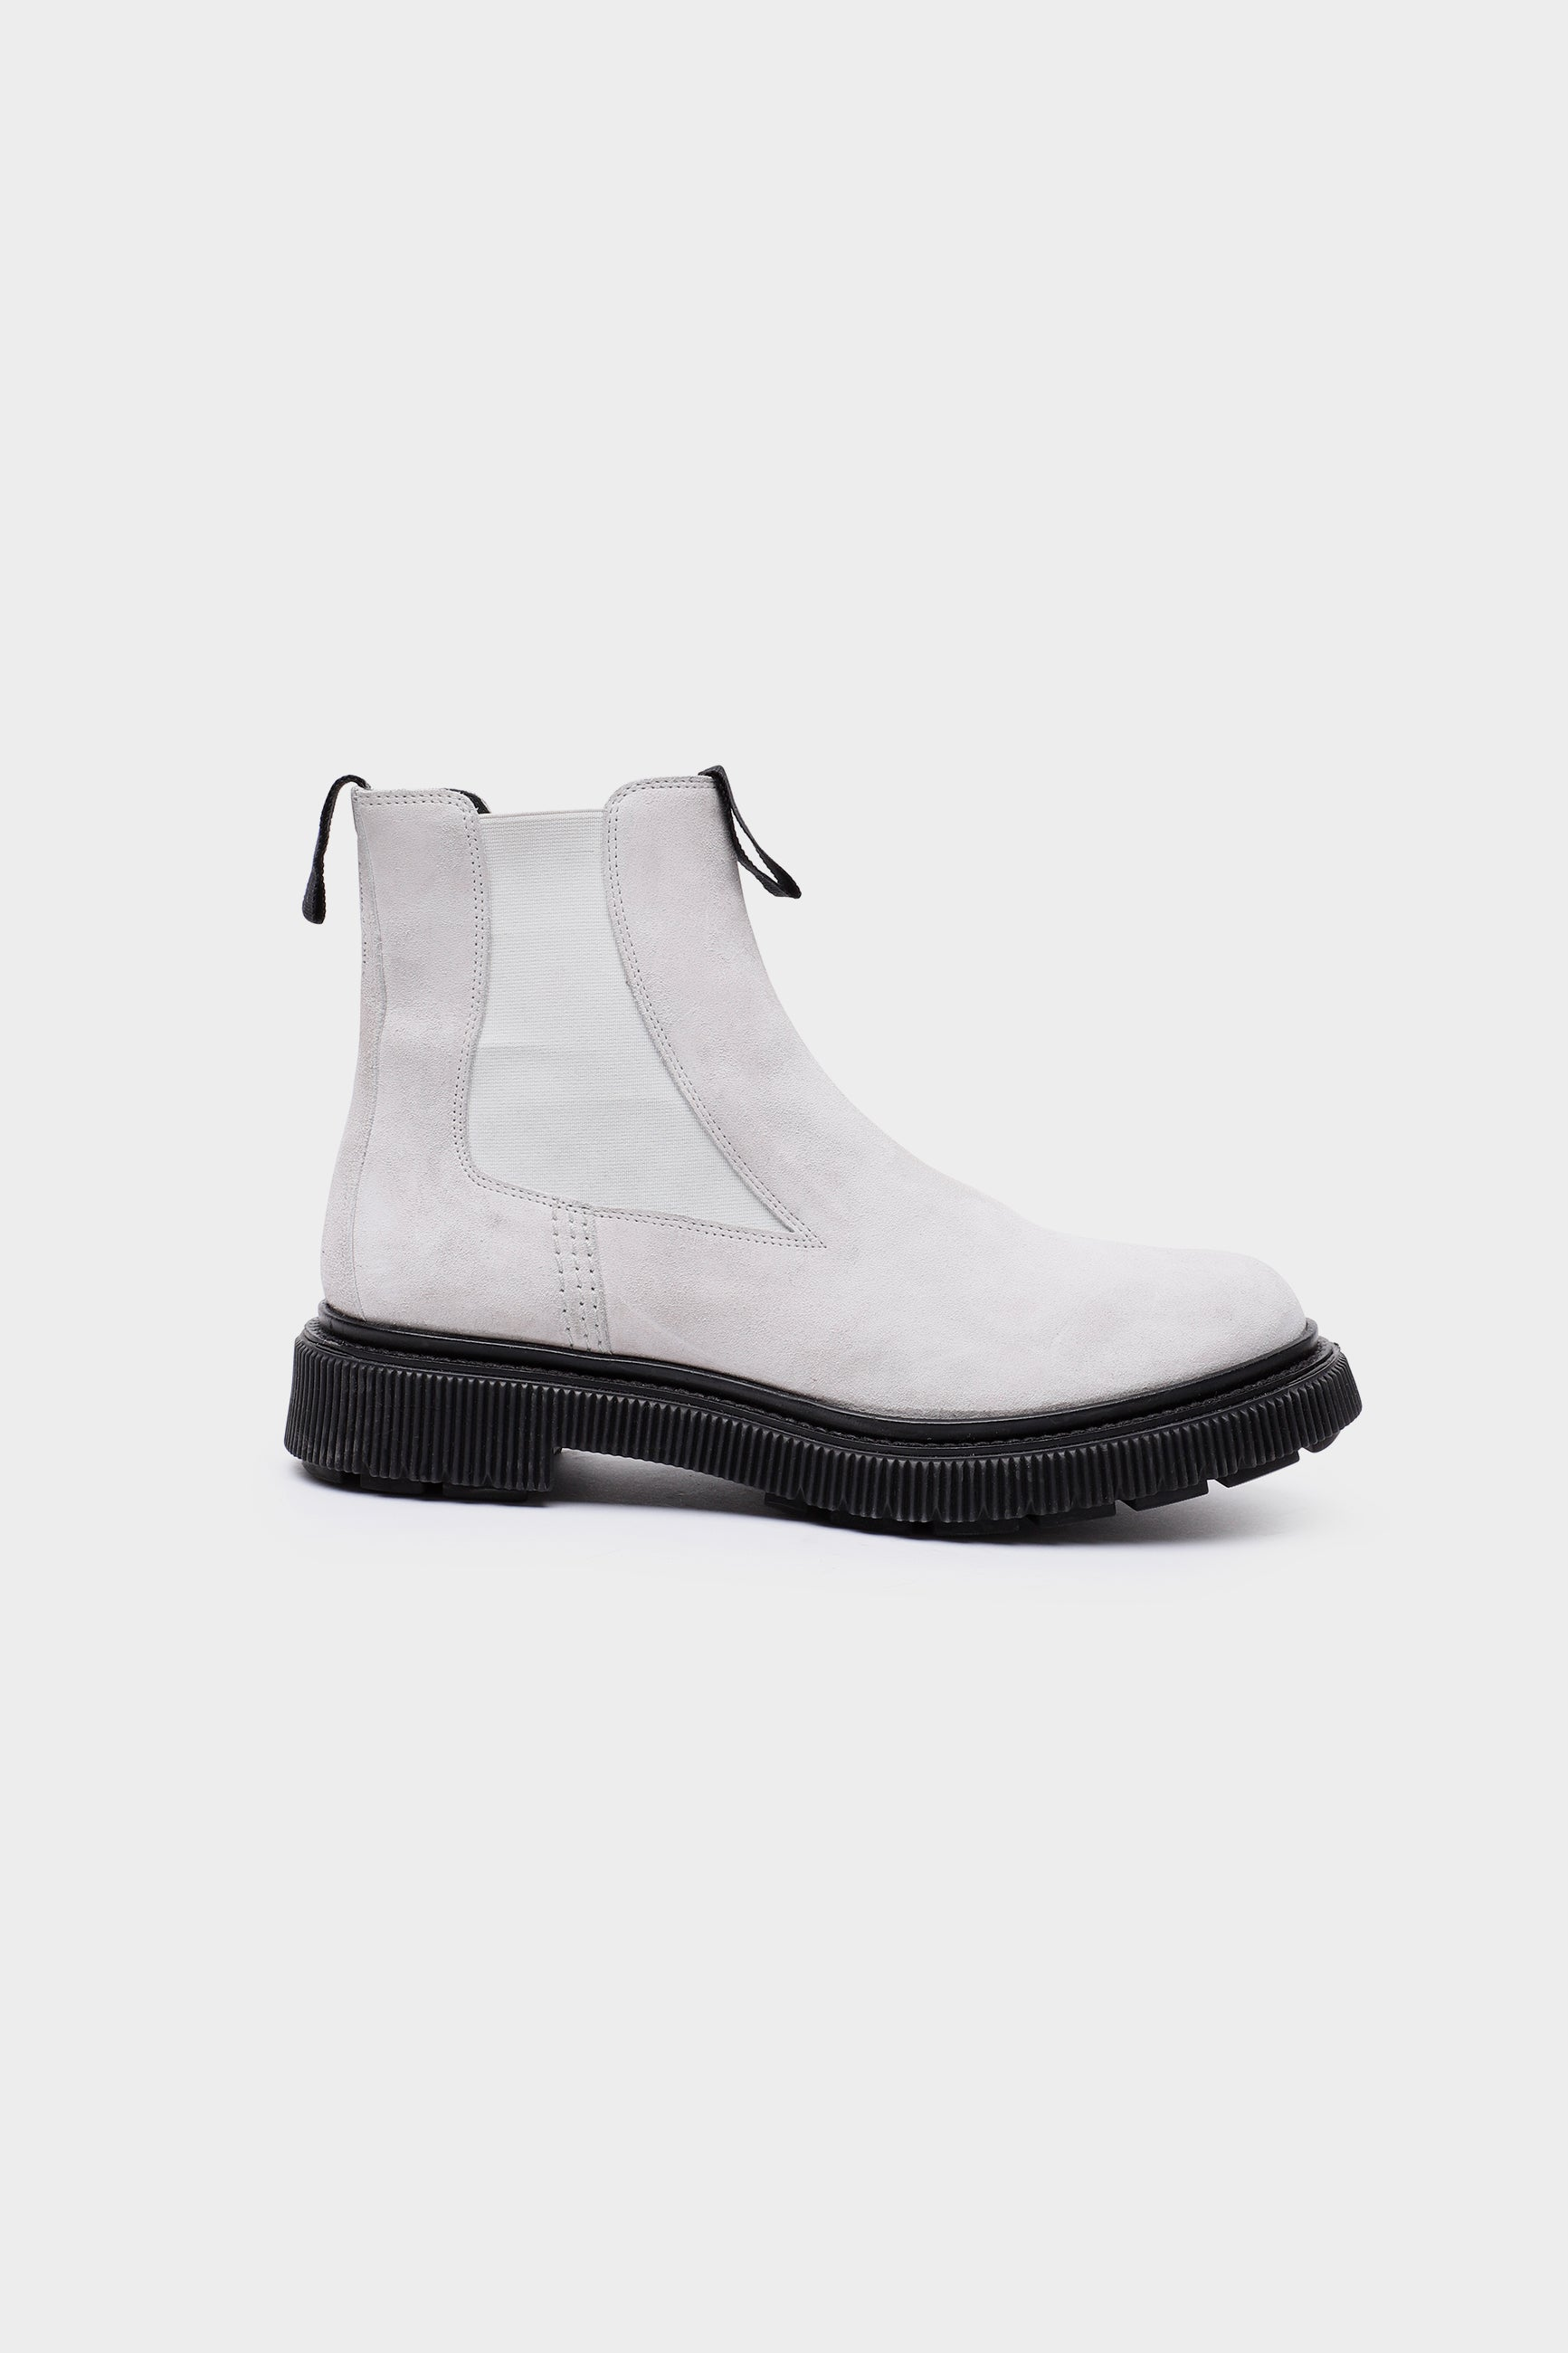 Études Type 146 Off White Shoes 2